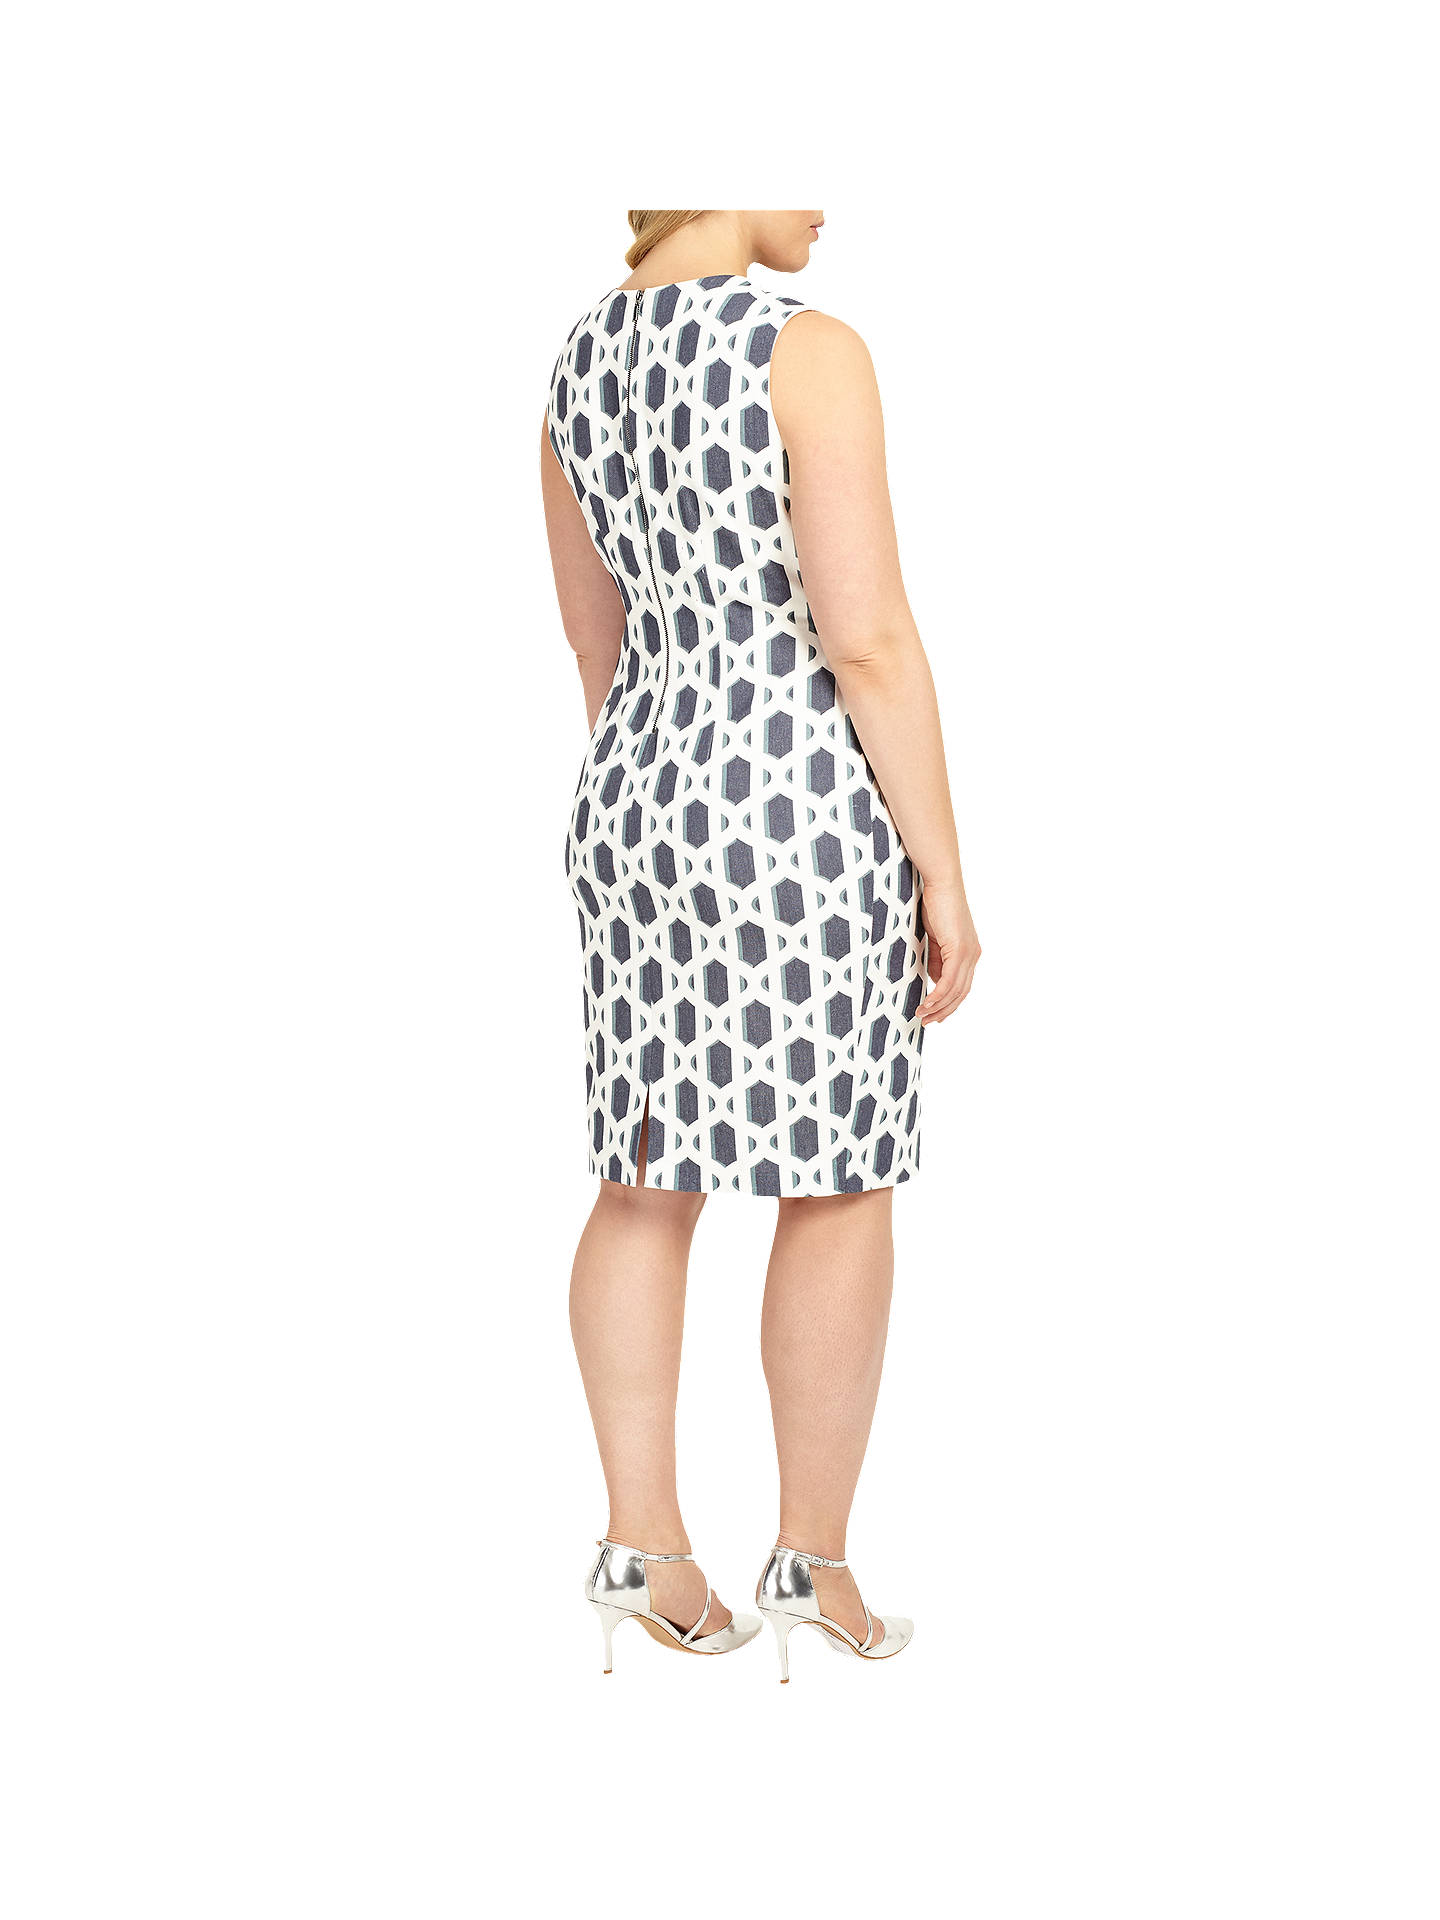 BuyStudio 8 Dannika Dress, Ivory/Blue, 24 Online at johnlewis.com